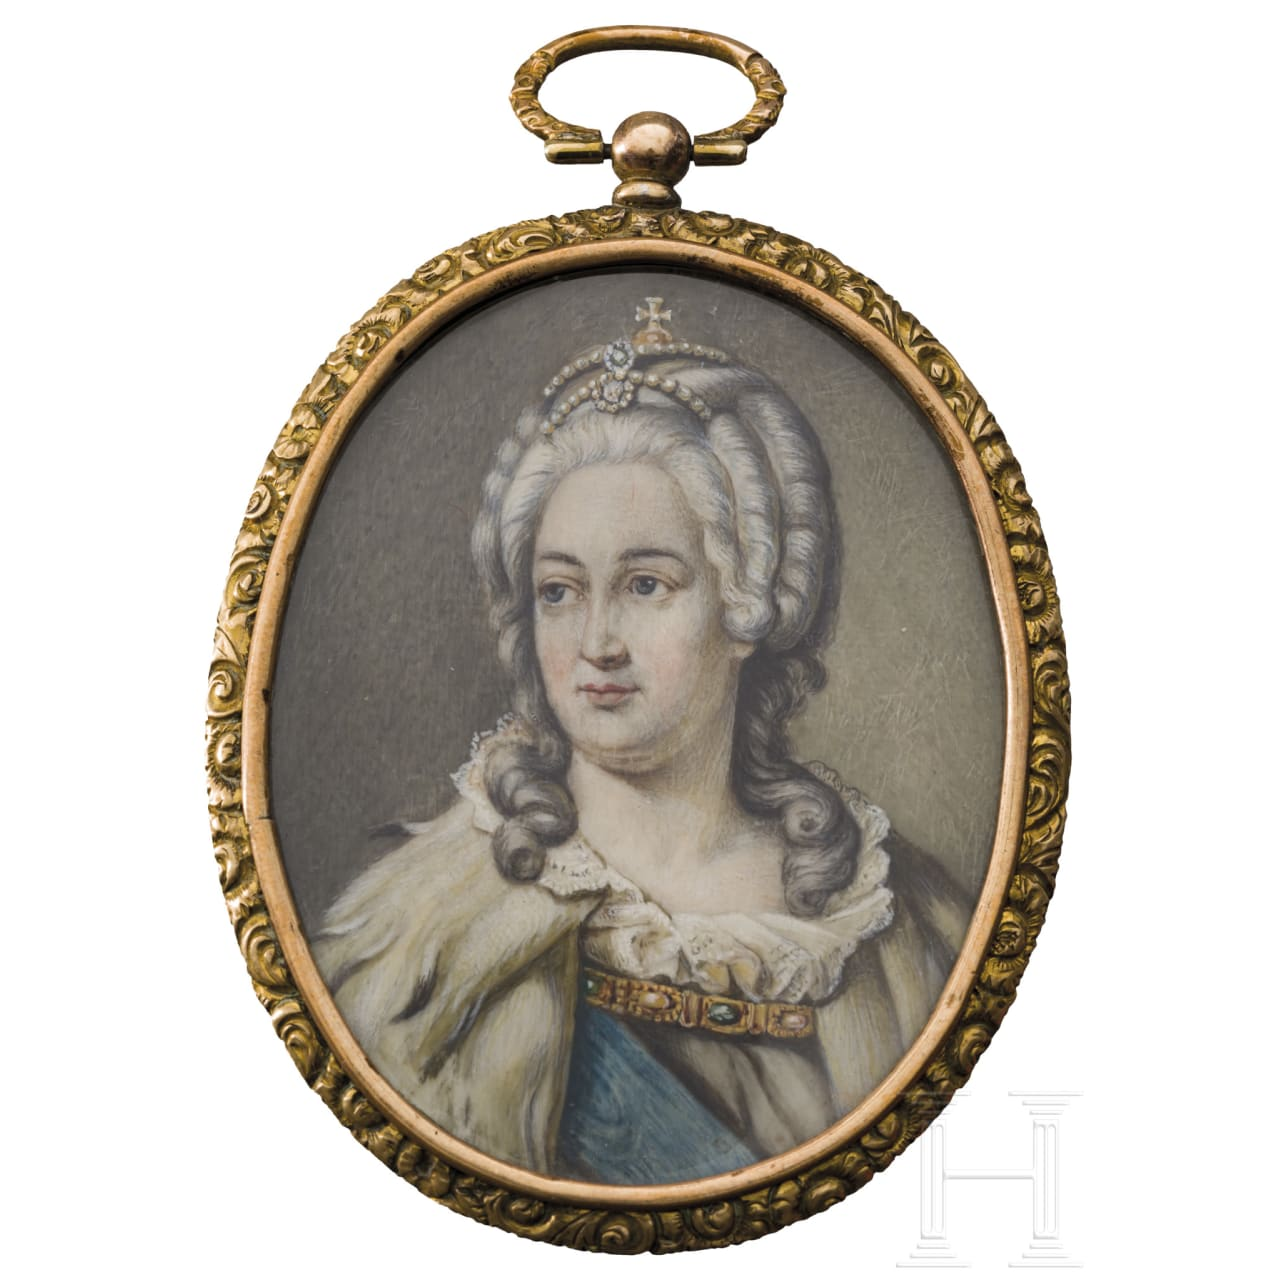 Portrait of the Tsarina Catherine the Great (1729 - 1796) - miniature painting on ivory